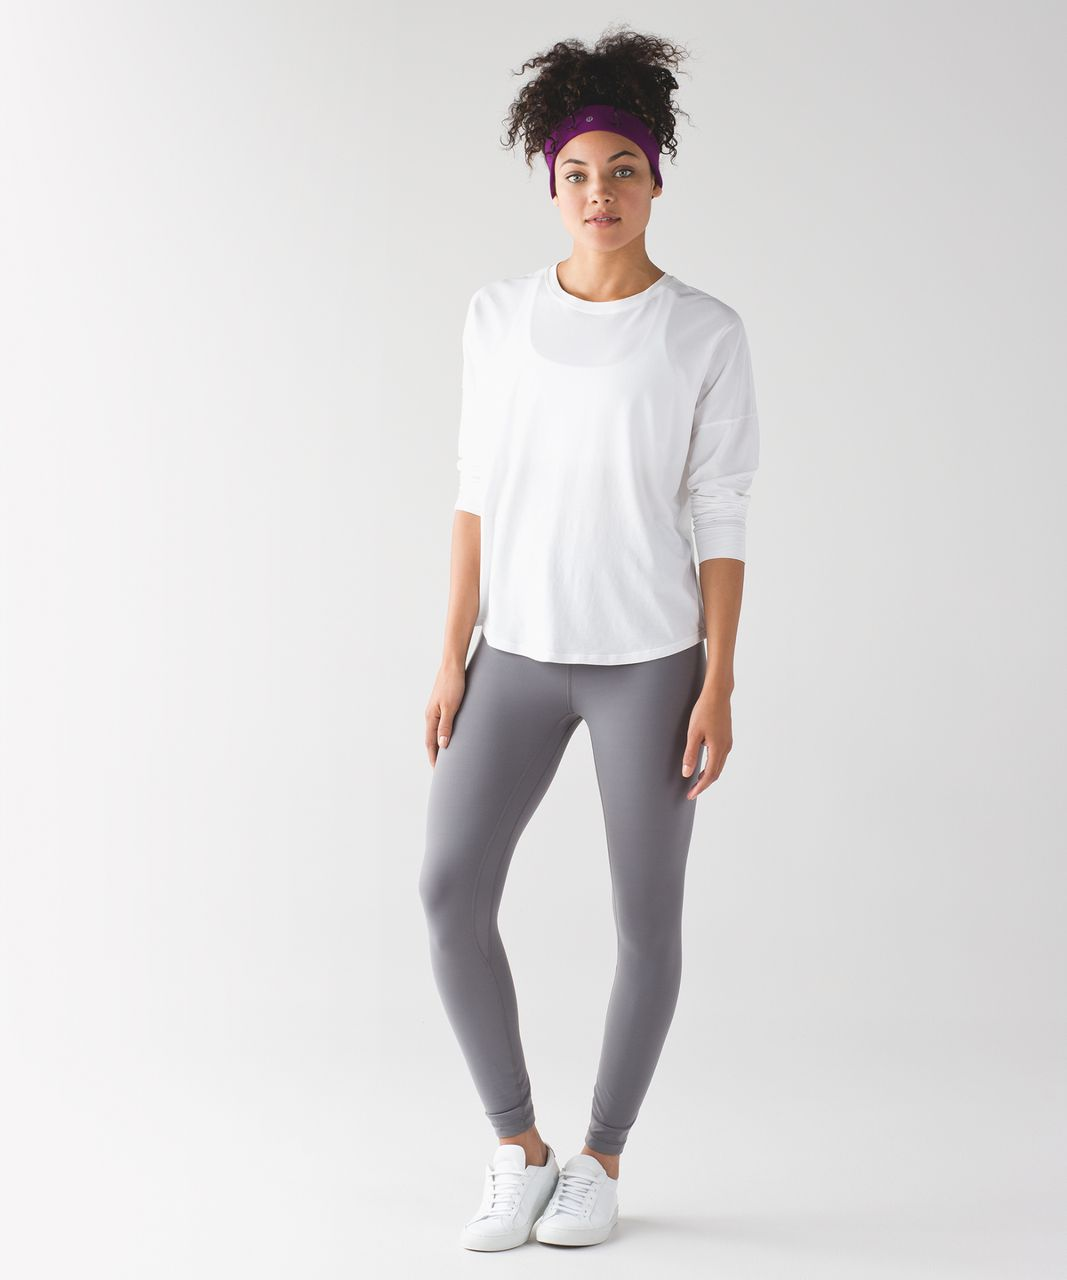 Lululemon Fly Away Tamer Headband II - Chilled Grape